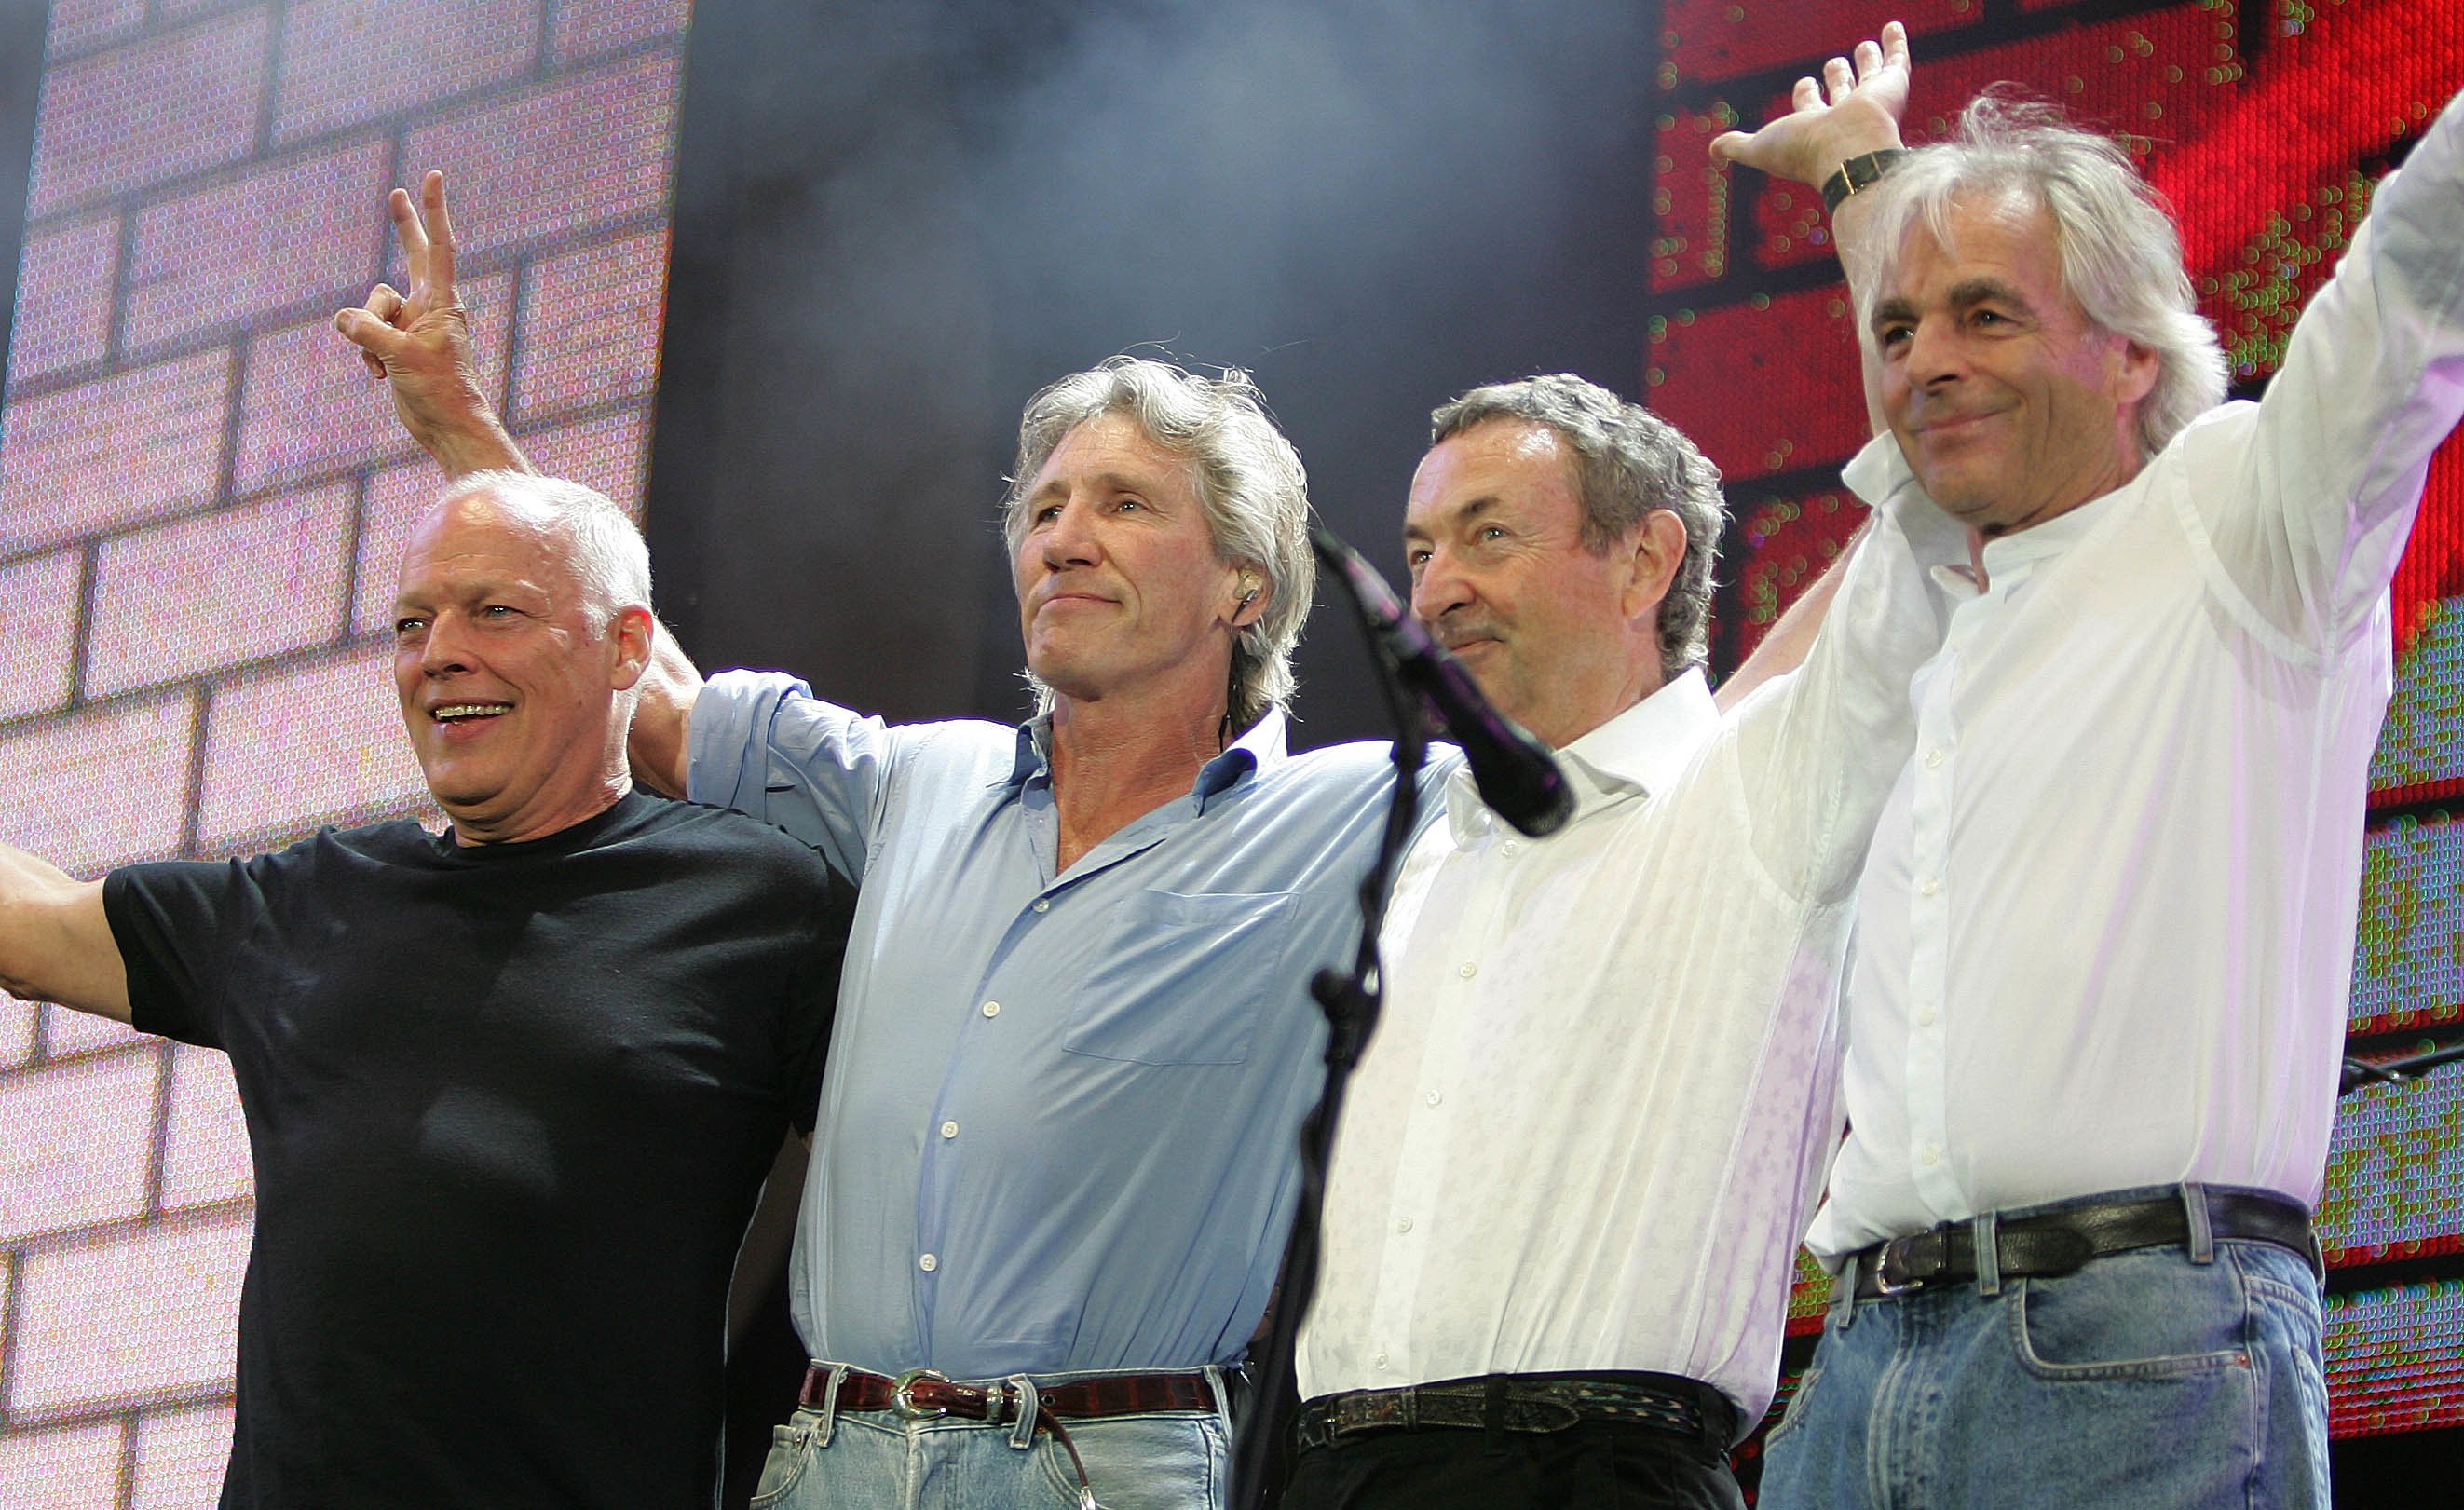 (L to R) British rock stars, Dave Gilmour, Roger Waters, Nick Mason and Rick Wright of Pink Floyd, perform at the Live 8 concert in Hyde Park in London July 2, 2005. A galaxy of rock and roll stars will grace stages across the globe on Saturday for what is being billed as the greatest music show ever, in a bid to put pressure on leaders of the Group of Eight major industrialised nations meeting in Scotland next week to do more to alleviate poverty, particularly in Africa. Live 8, an expanded version of the Live Aid sensation 20 years ago, will take in 10 cities and four continents, kicking off in Tokyo in the east and ending in North America in the west. REUTERS/Stephen Hird  MFK/CN